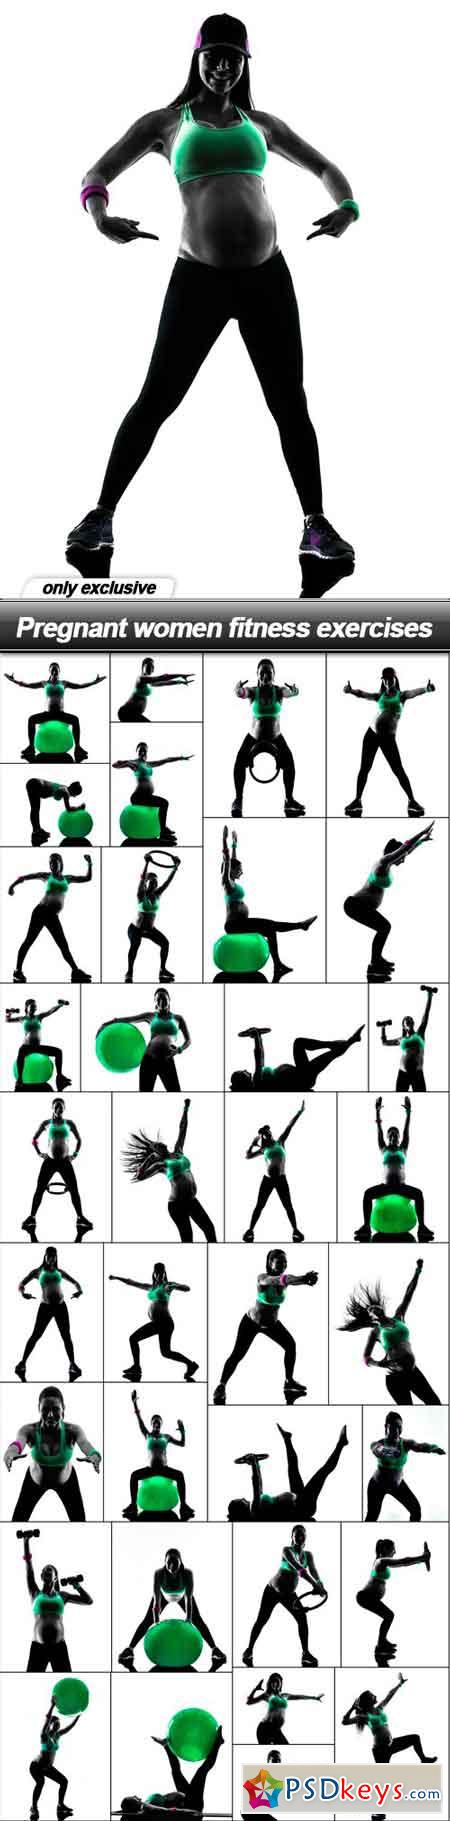 Pregnant women fitness exercises - 35 UHQ JPEG